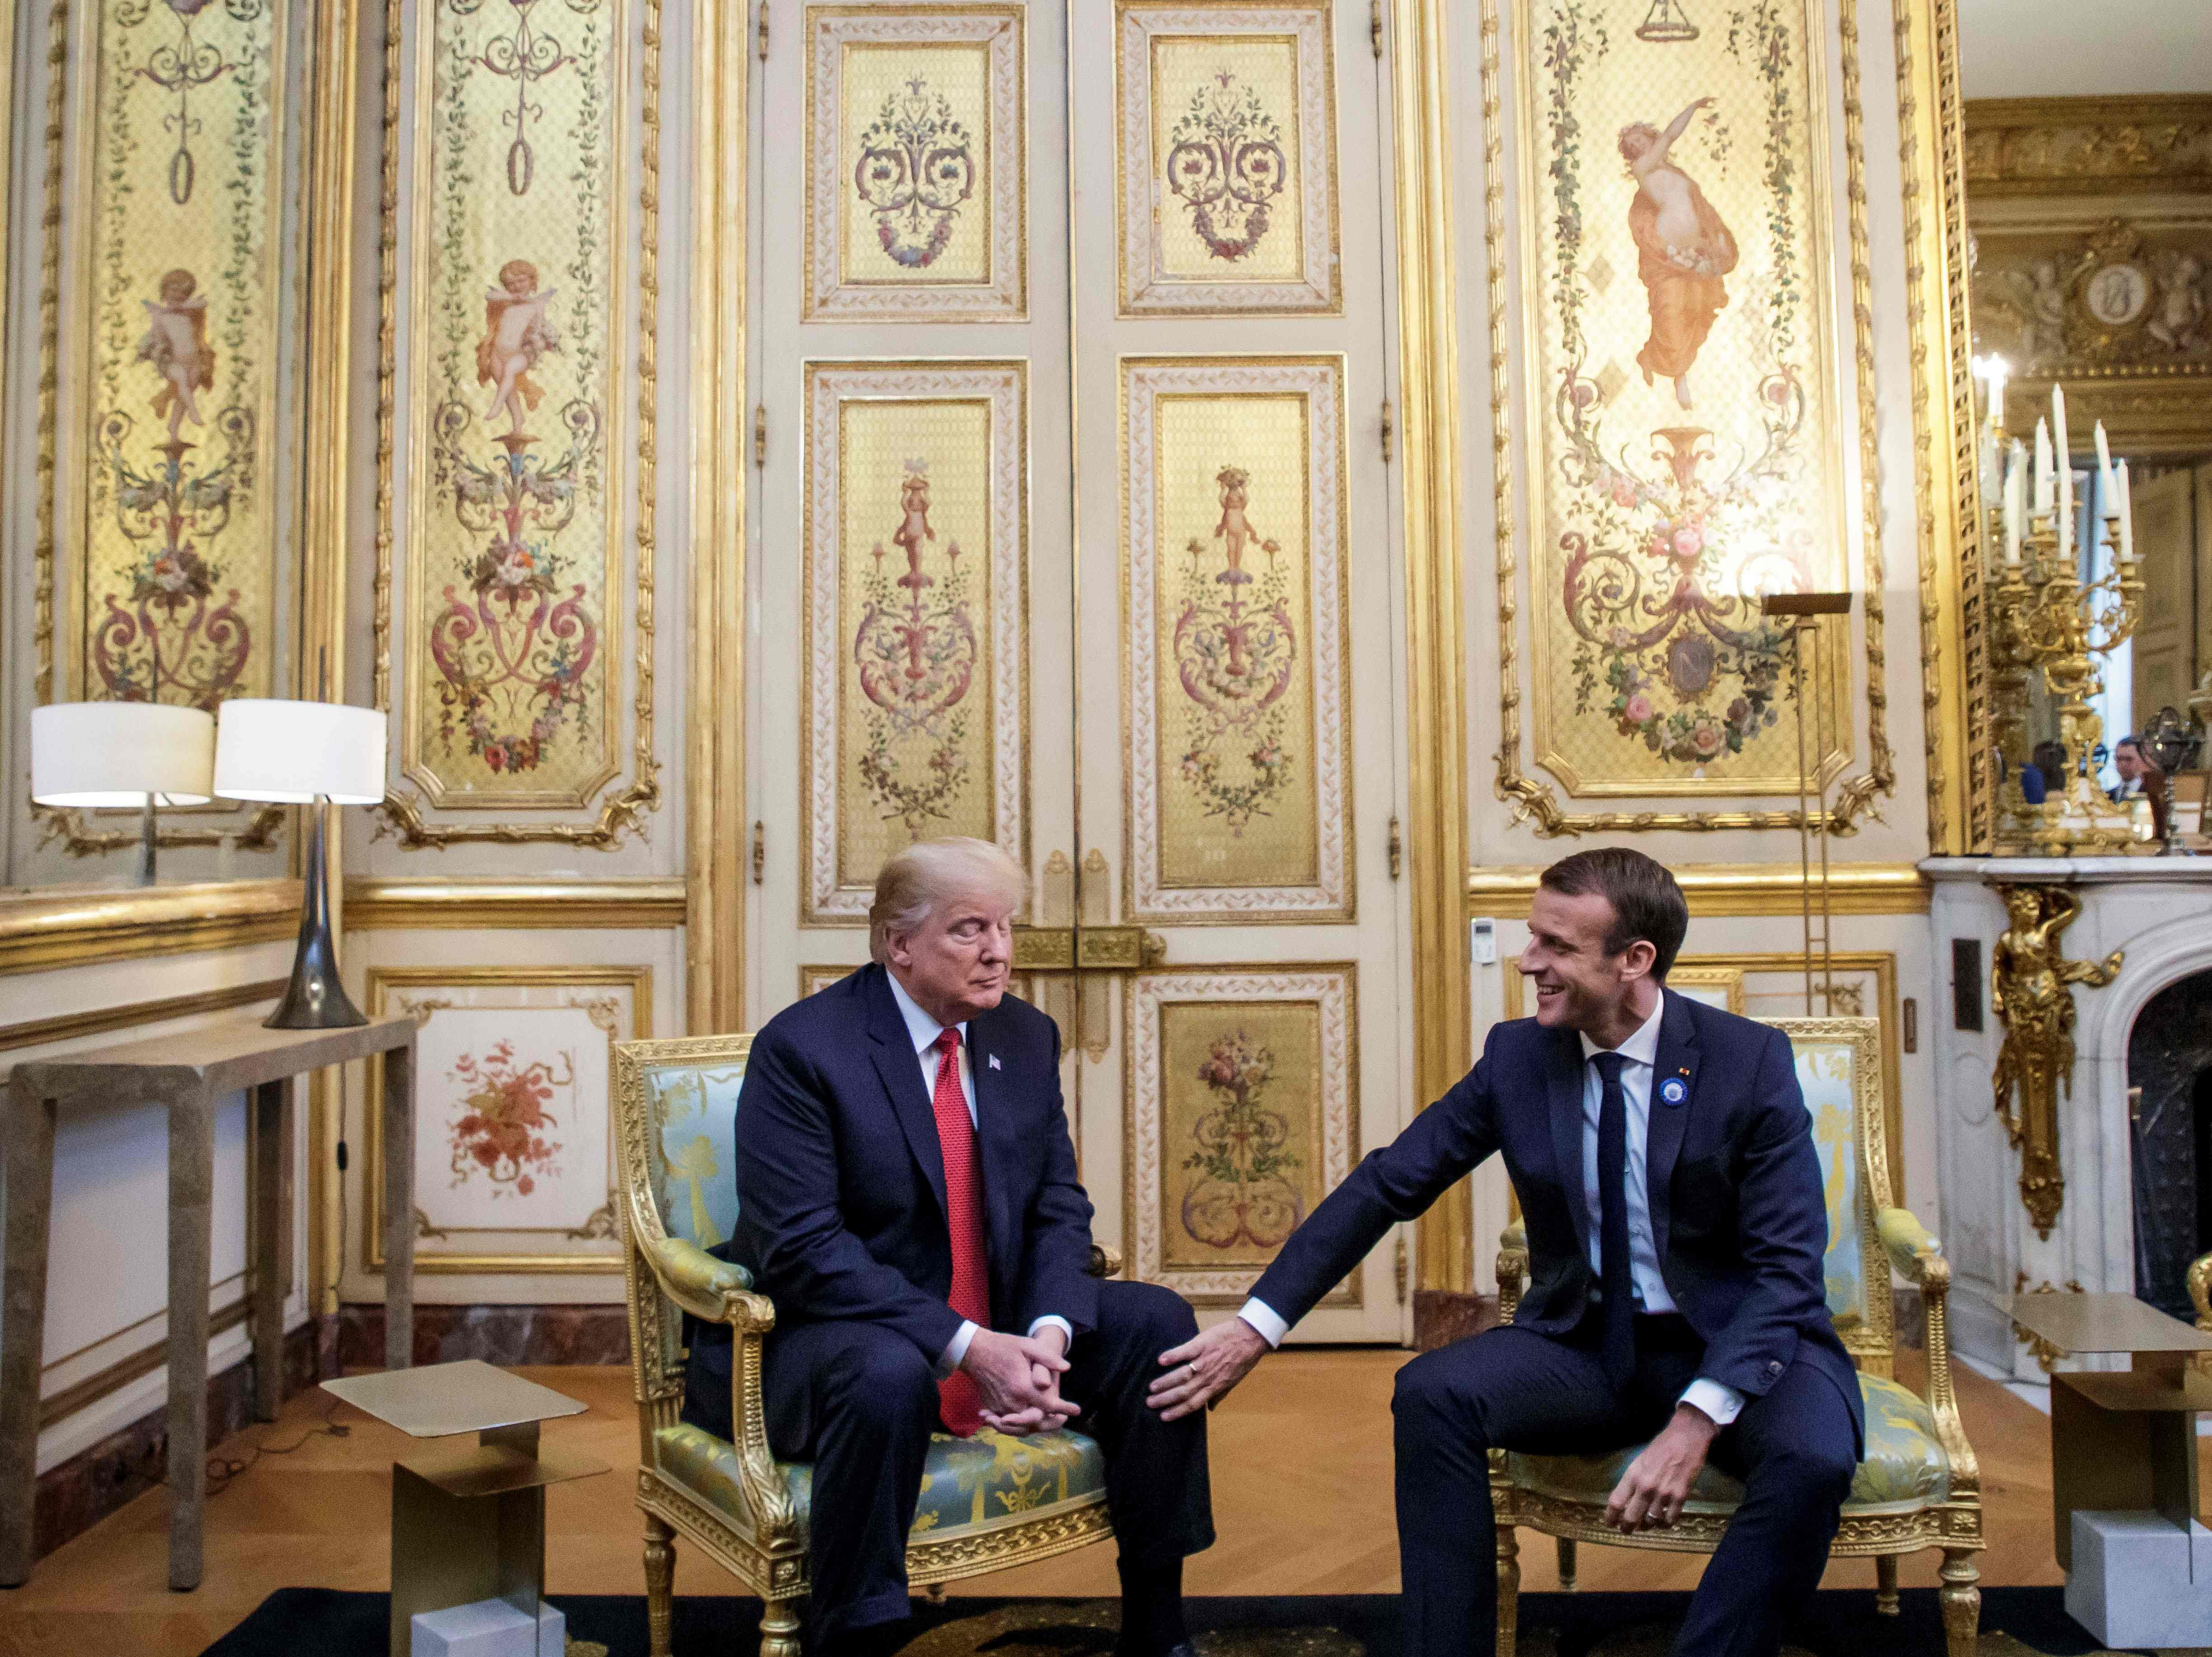 President Donald Trump speaks with French president Emmanuel Macron prior to their meeting at the Elysee Palace in Paris on Nov. 10, 2018, on the sidelines of commemorations marking the 100th anniversary of the November 11, 1918 armistice, ending World War I.